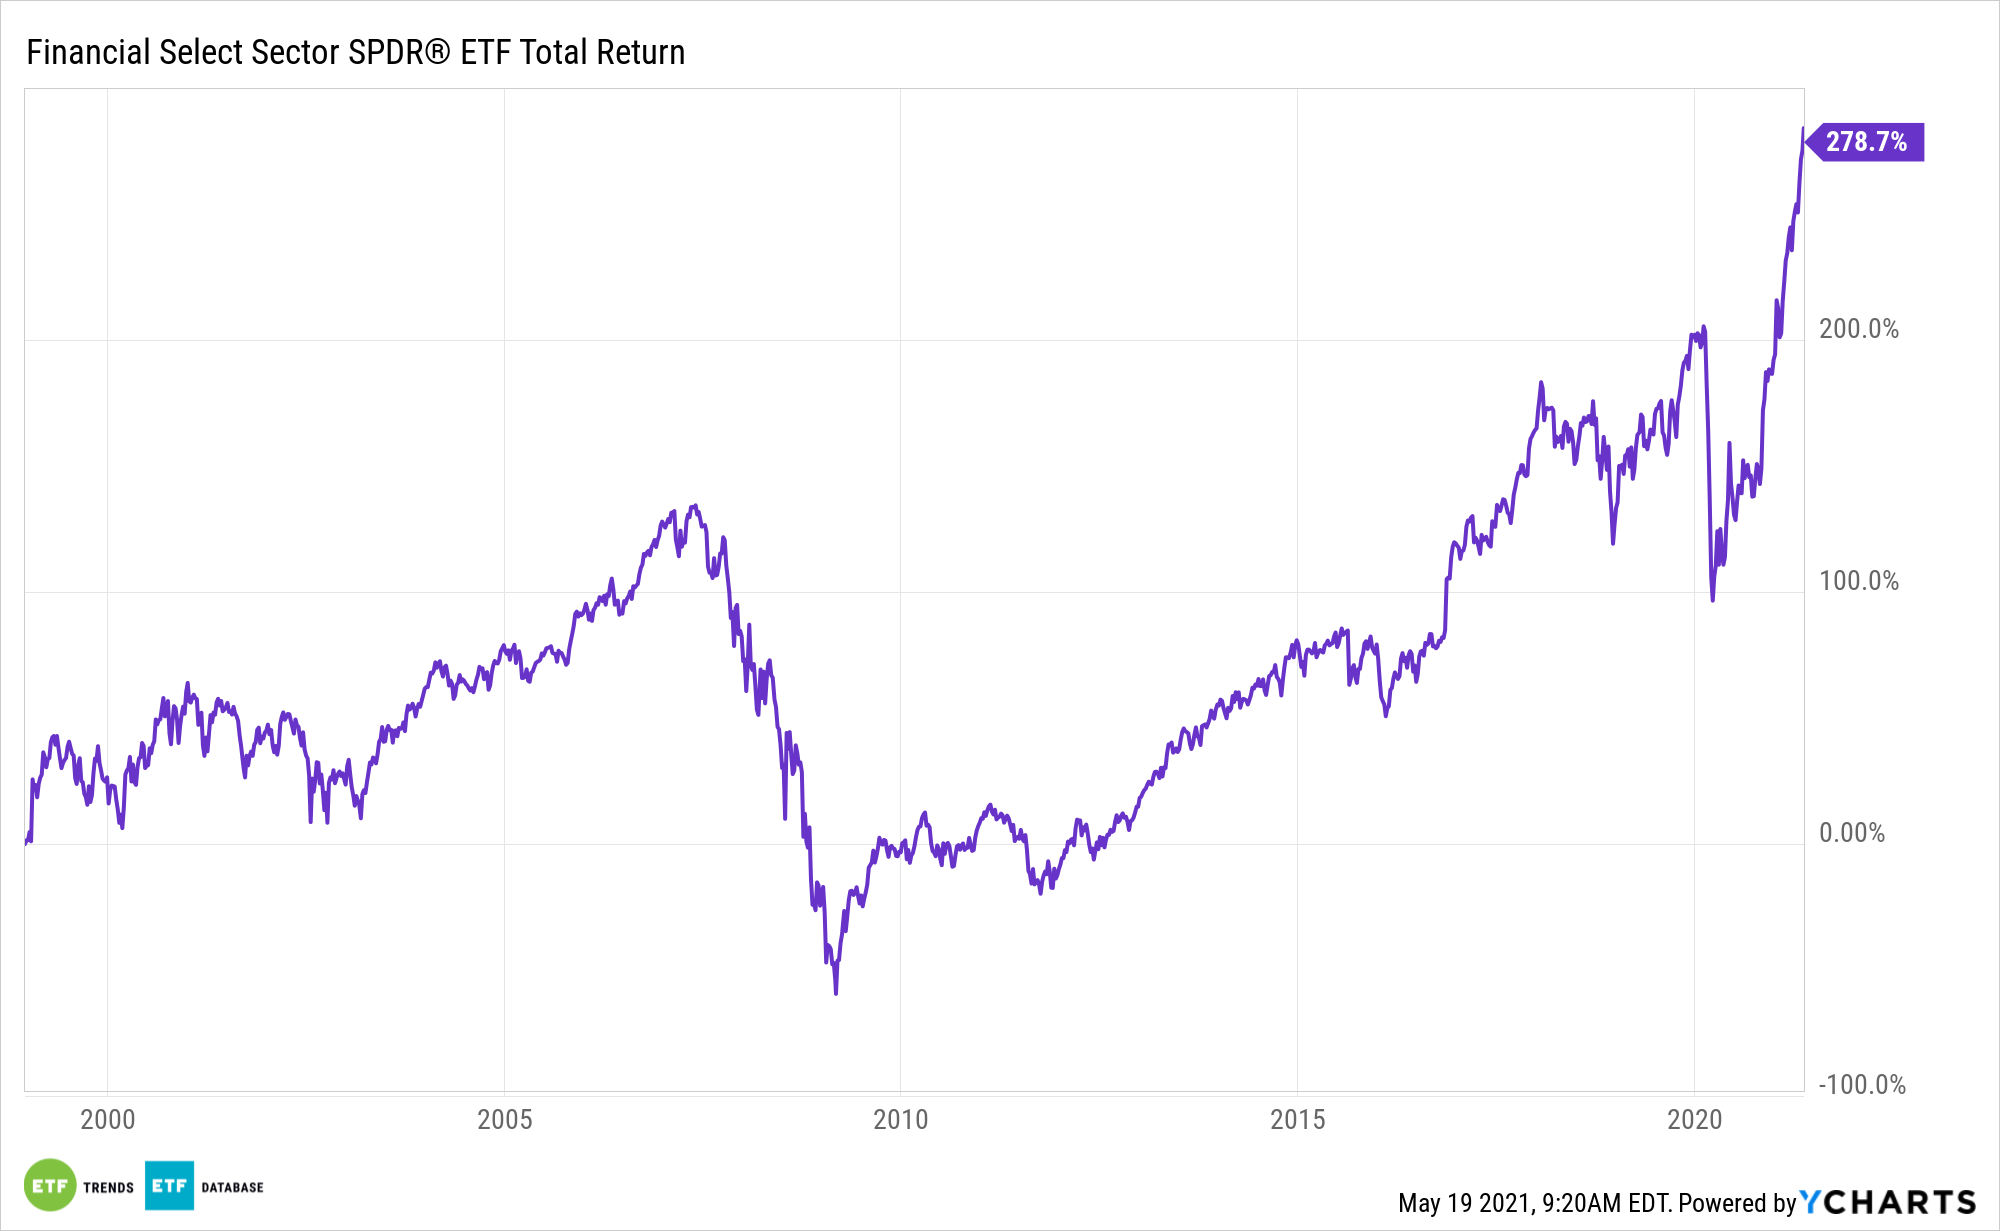 XLF All Time Performance